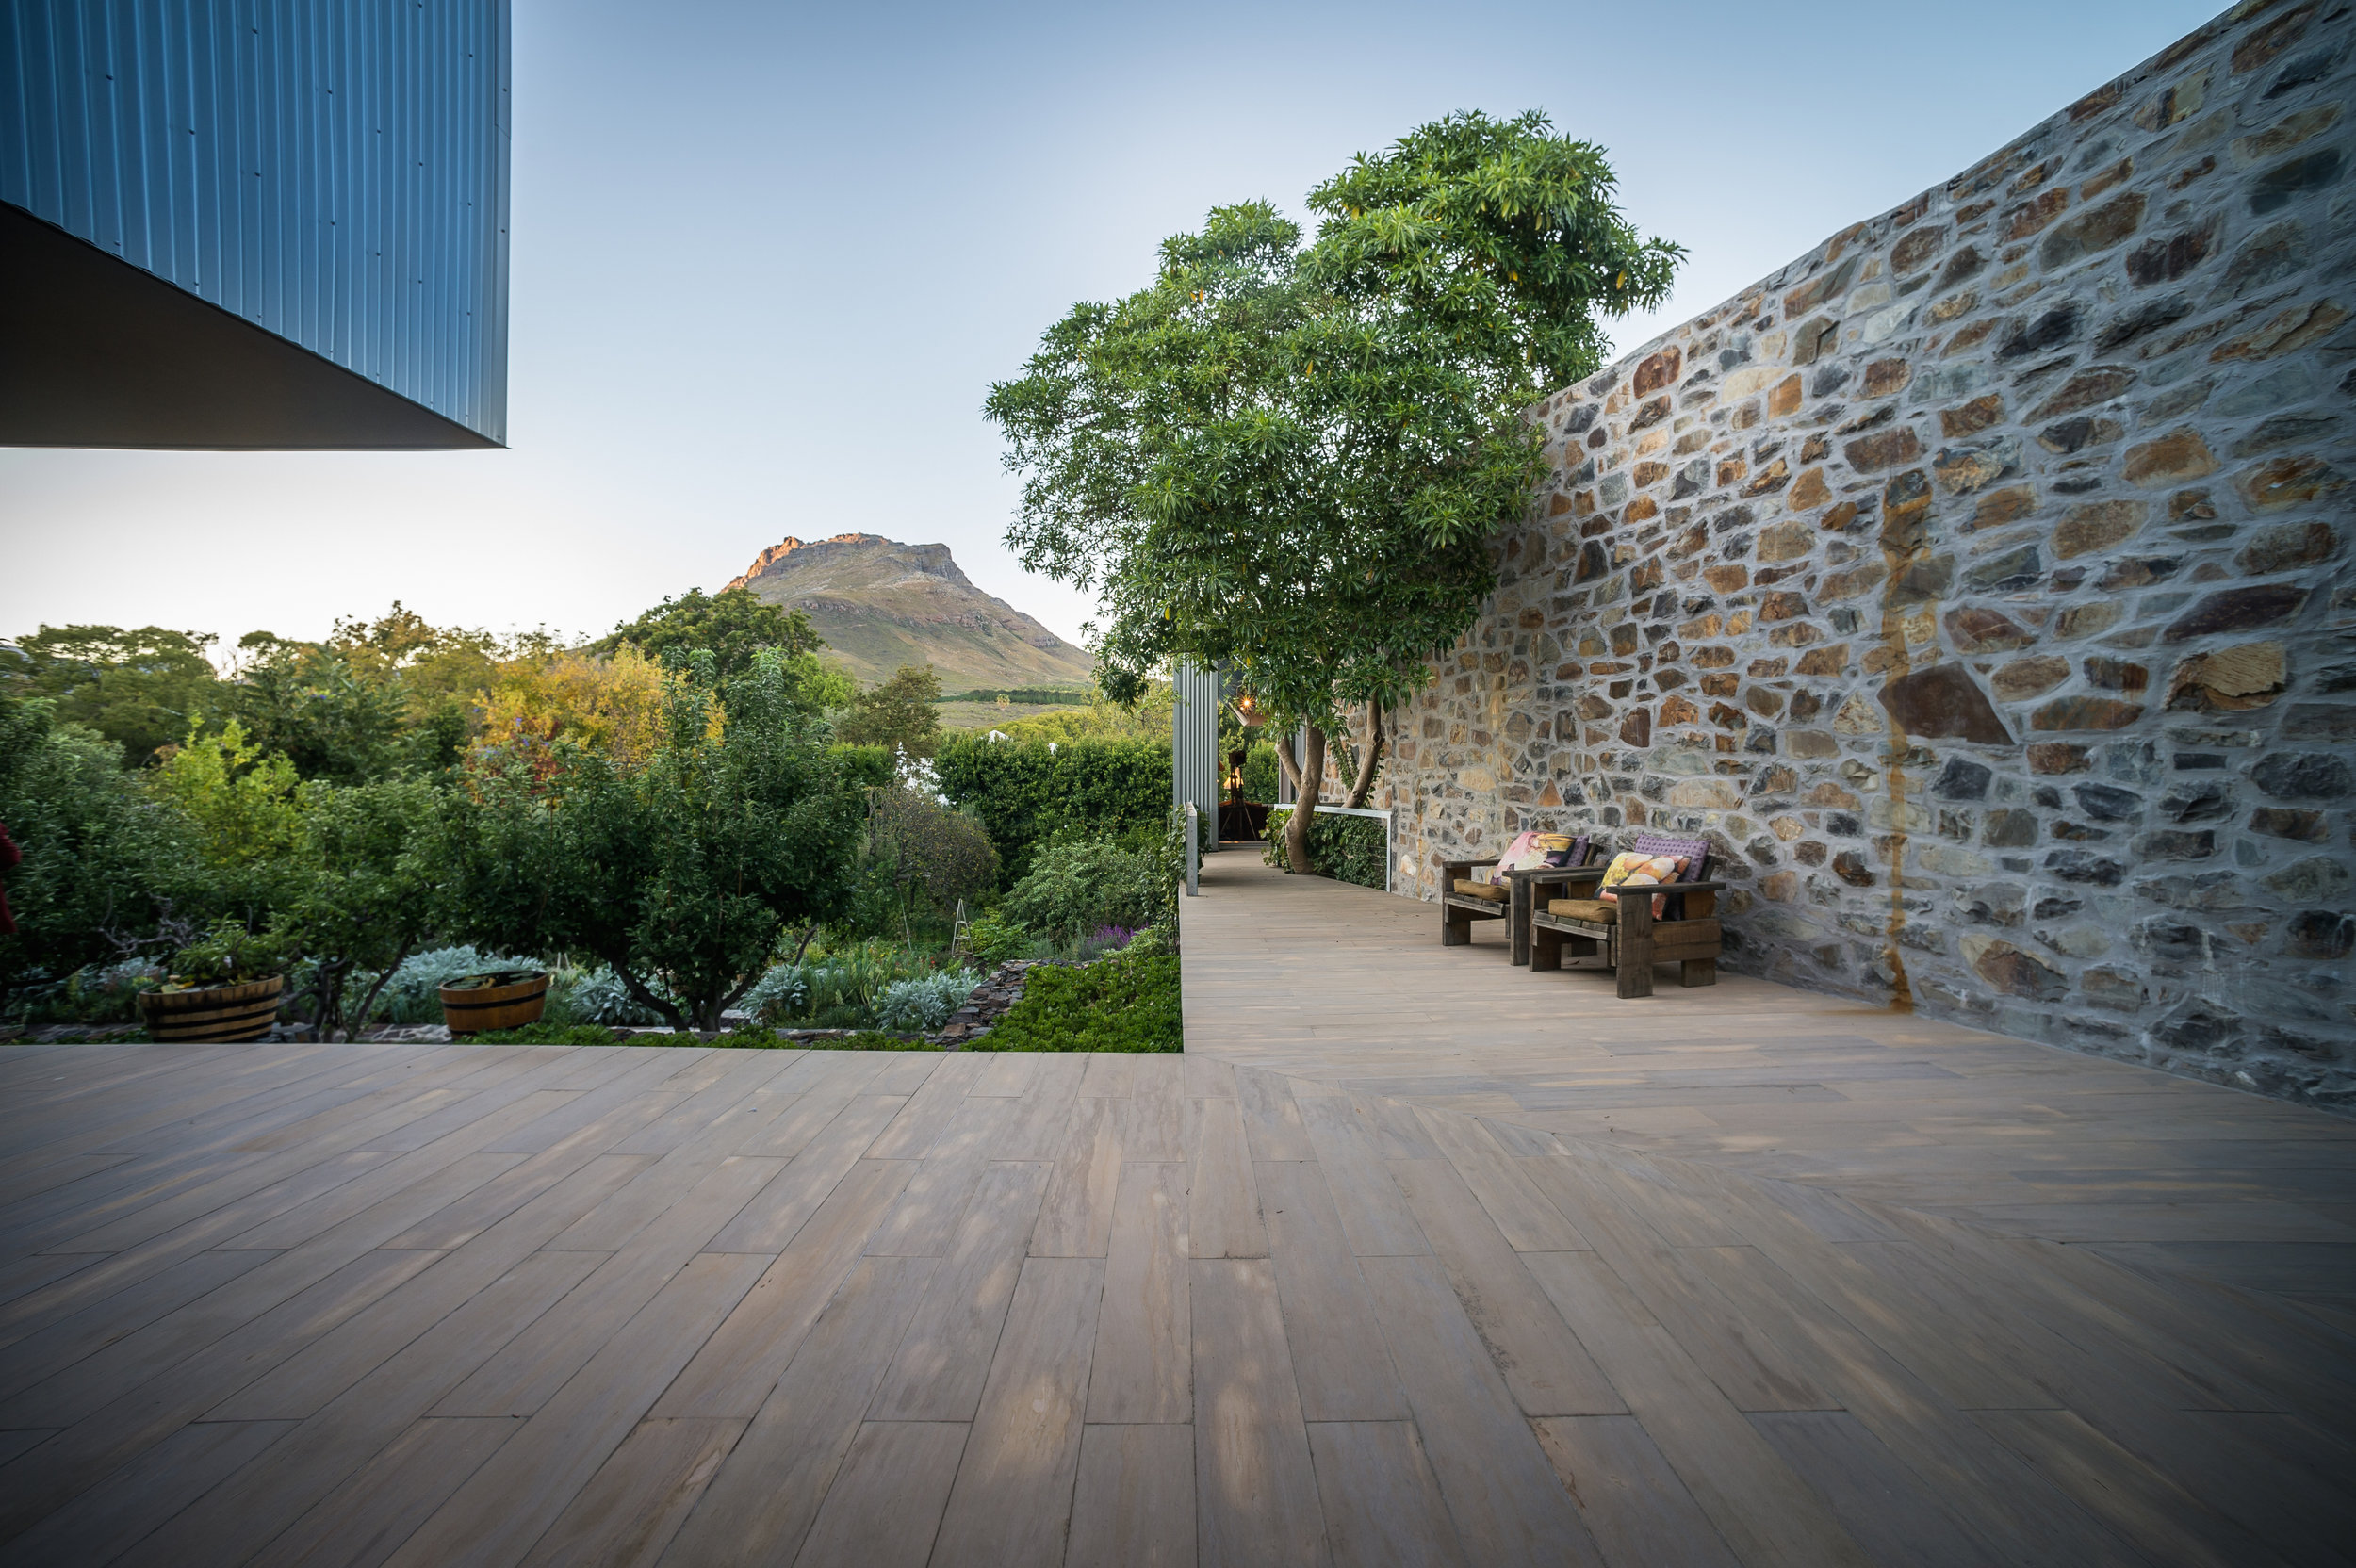 RelationToLandscape_SleeHouseStellenbosch_PhotoCredit_WilPuntFromPeartreePhotography.jpg